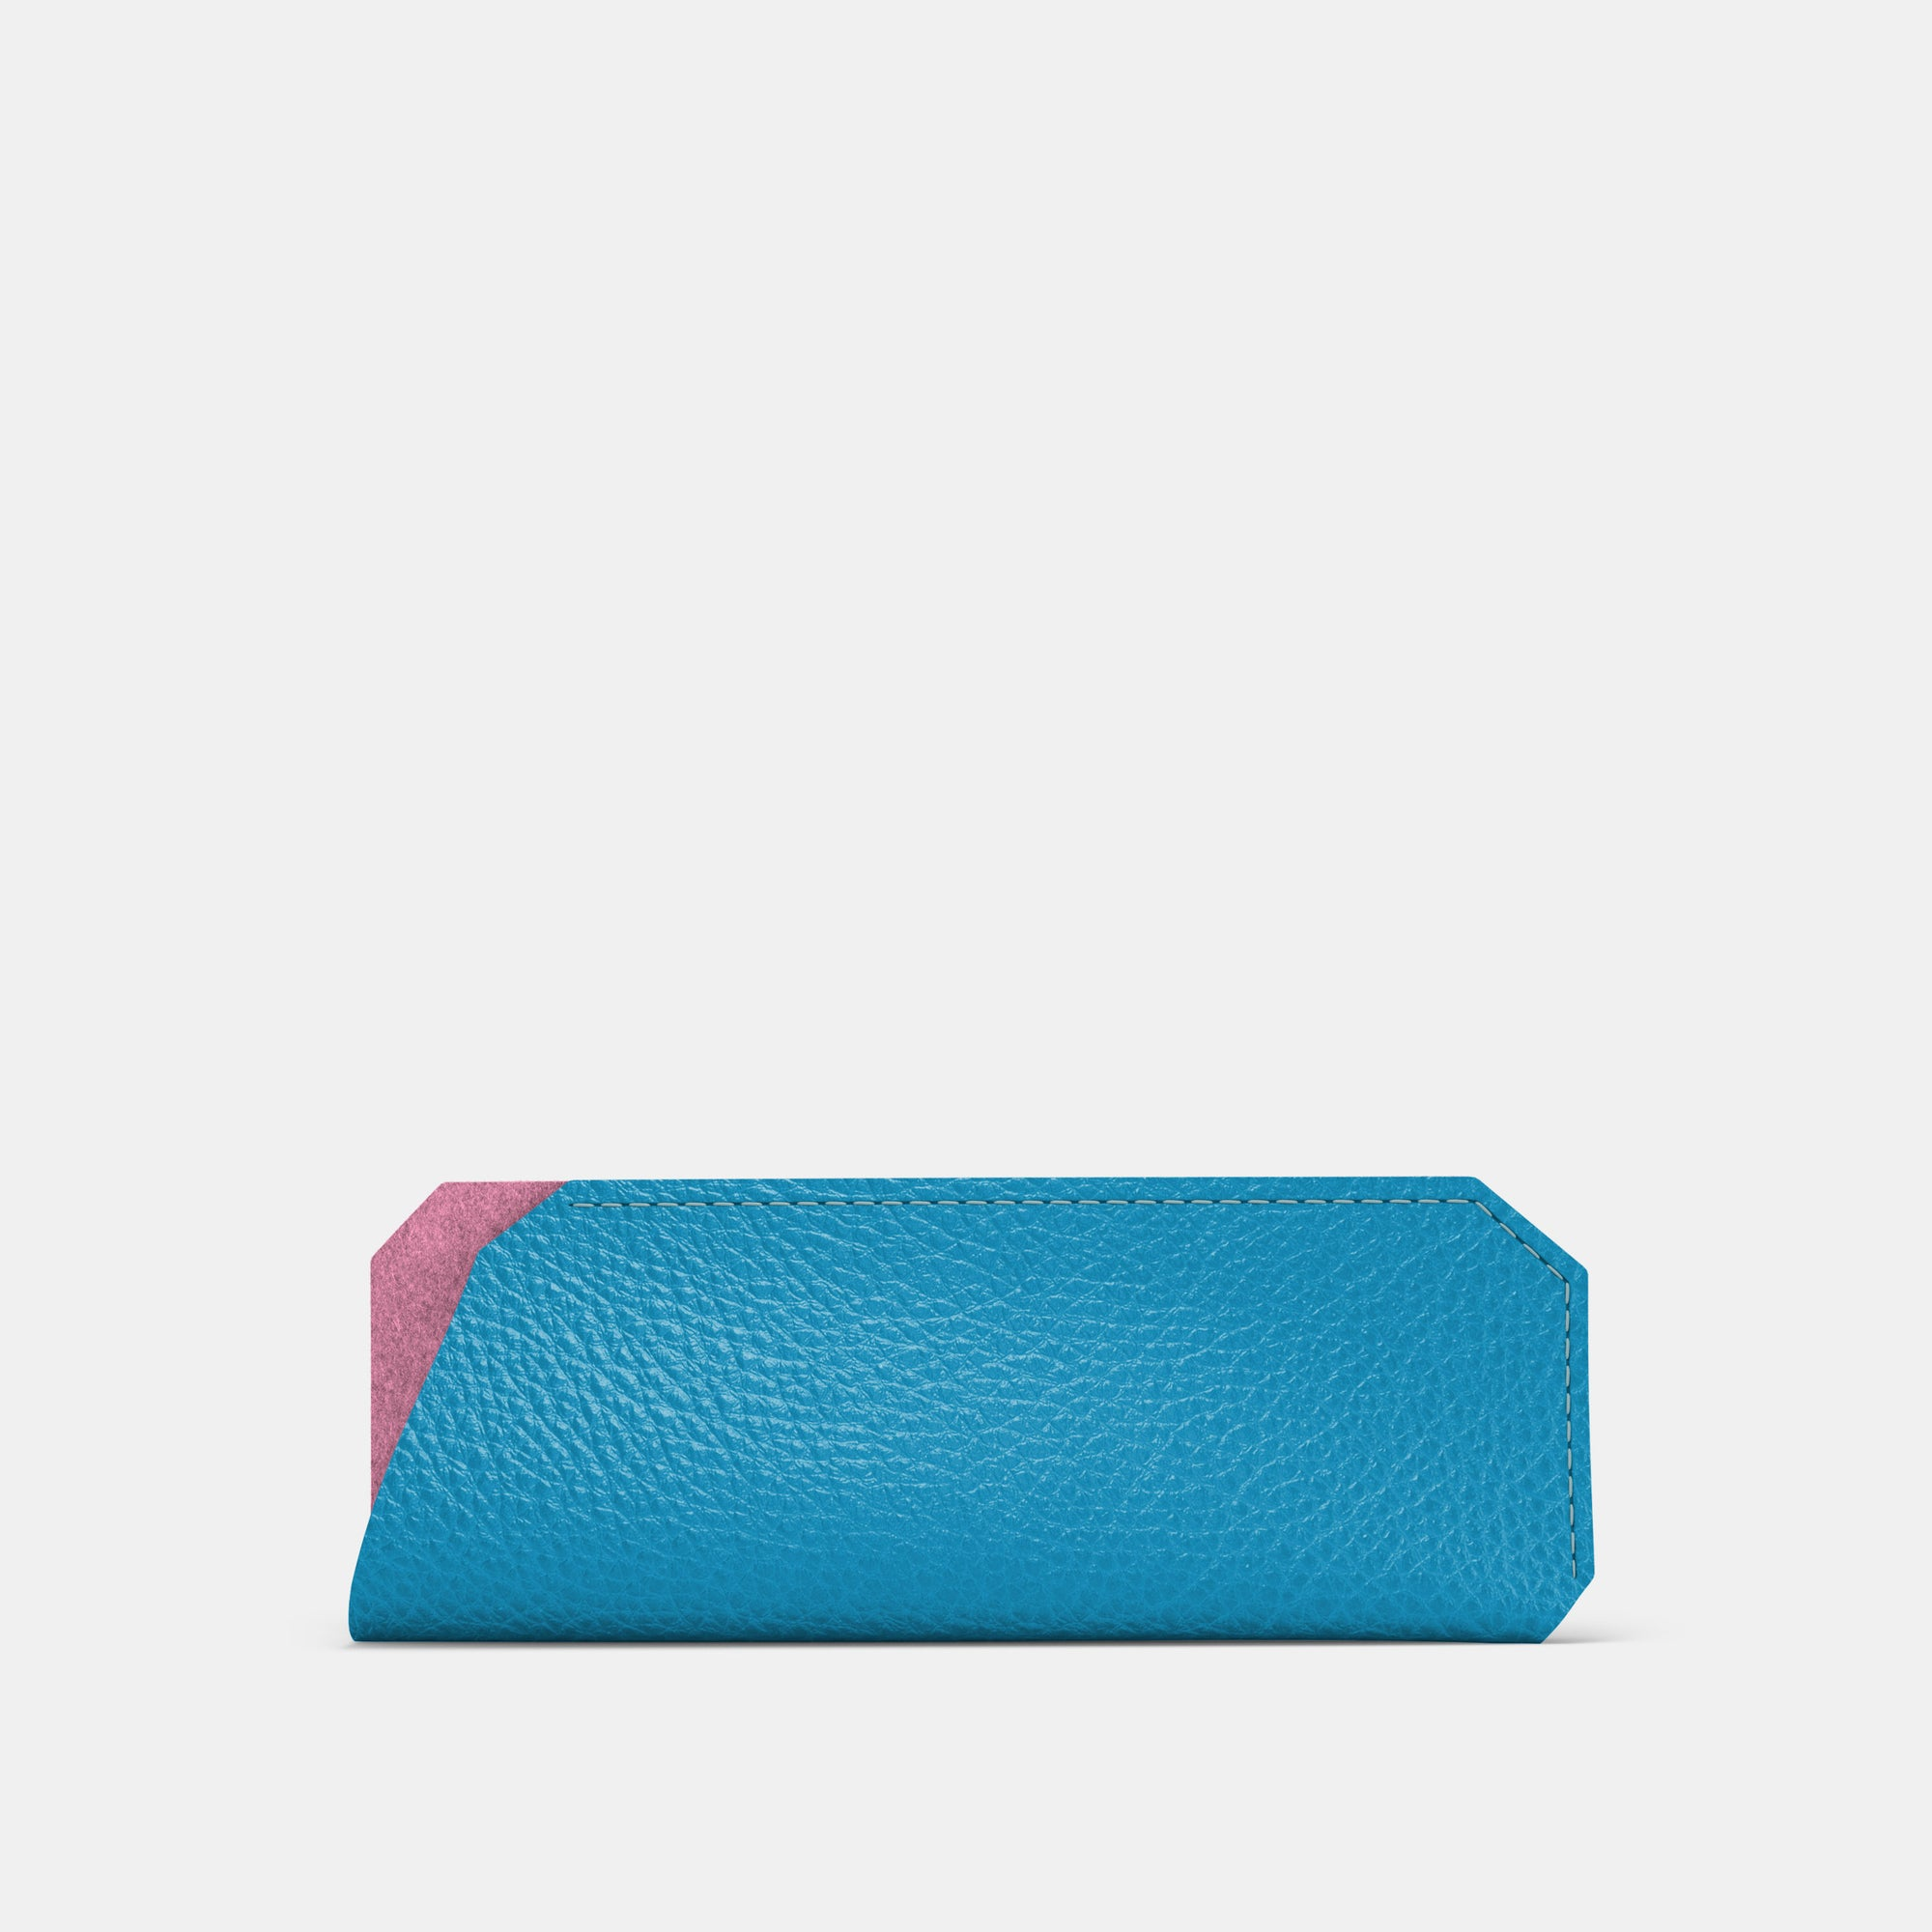 Glasses case - Cobalto and Pink - RYAN London